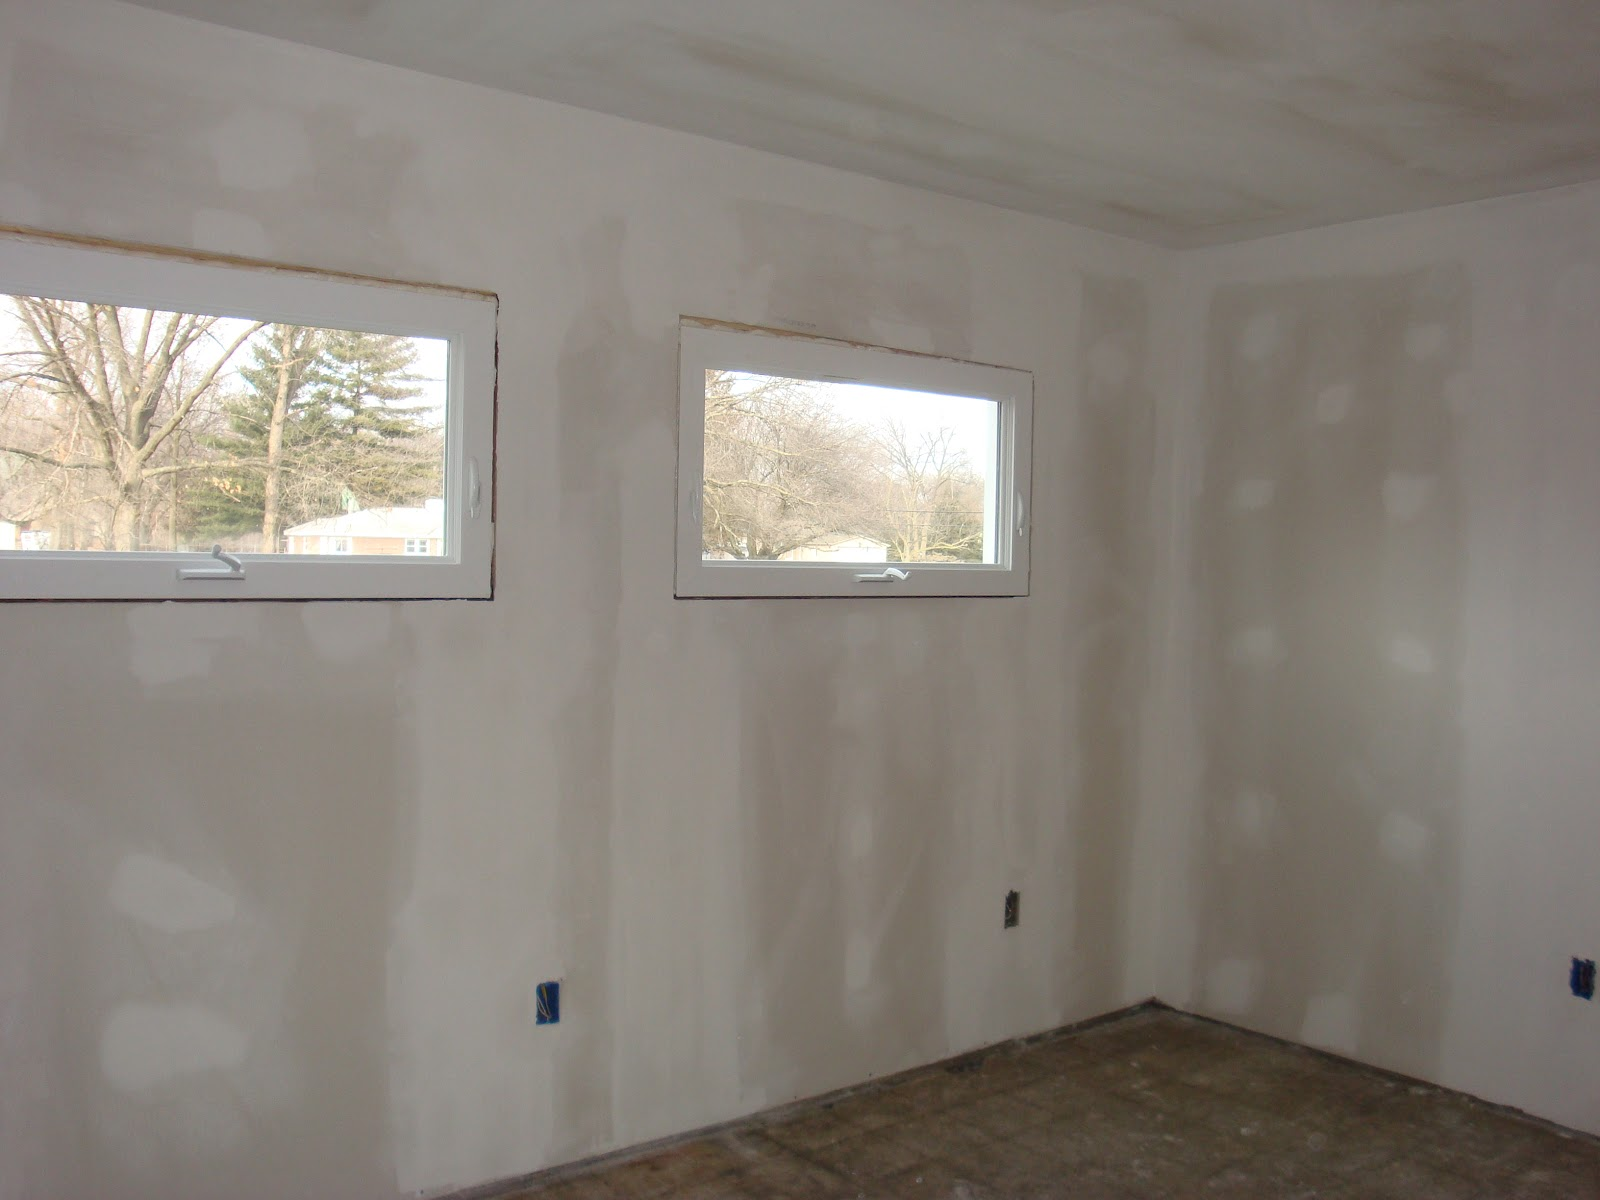 Ashley S Nest Family Room Windows And Drywall